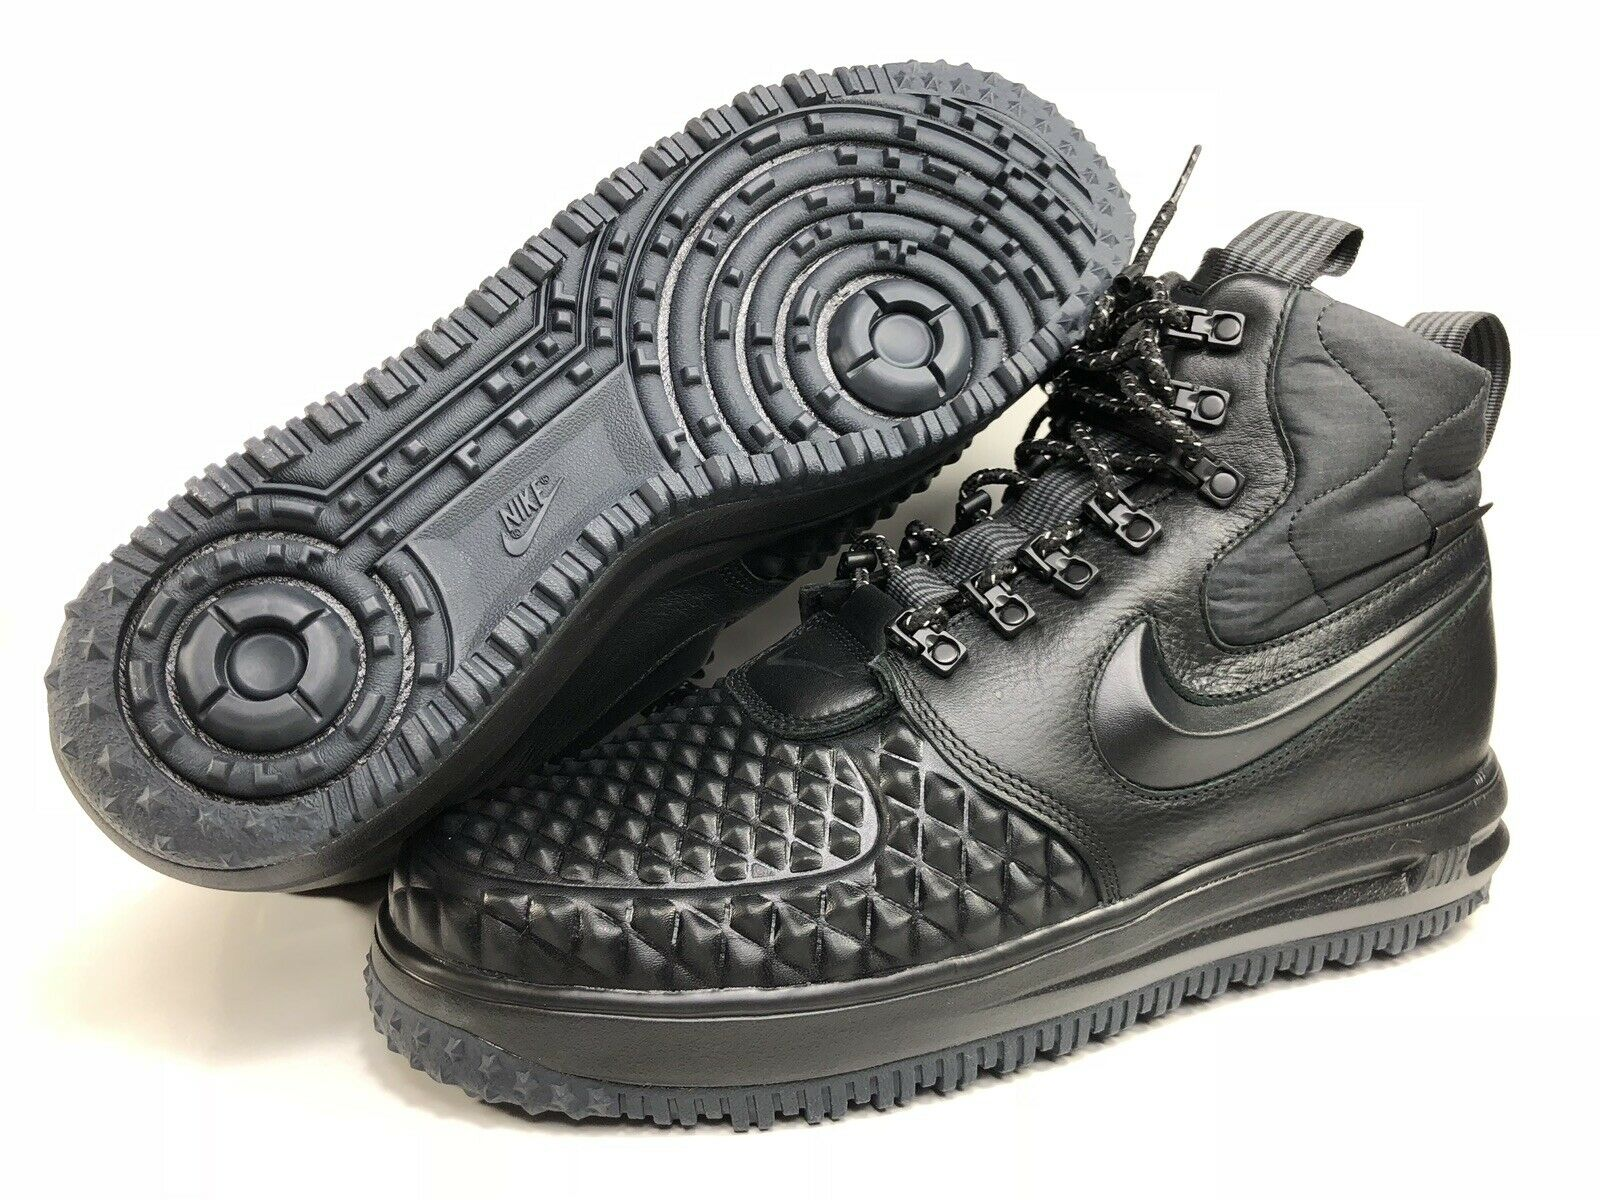 Nike Lunar Air Force 1 Mens Duckboot '17 Triple Black 916682 002 Size 10.5